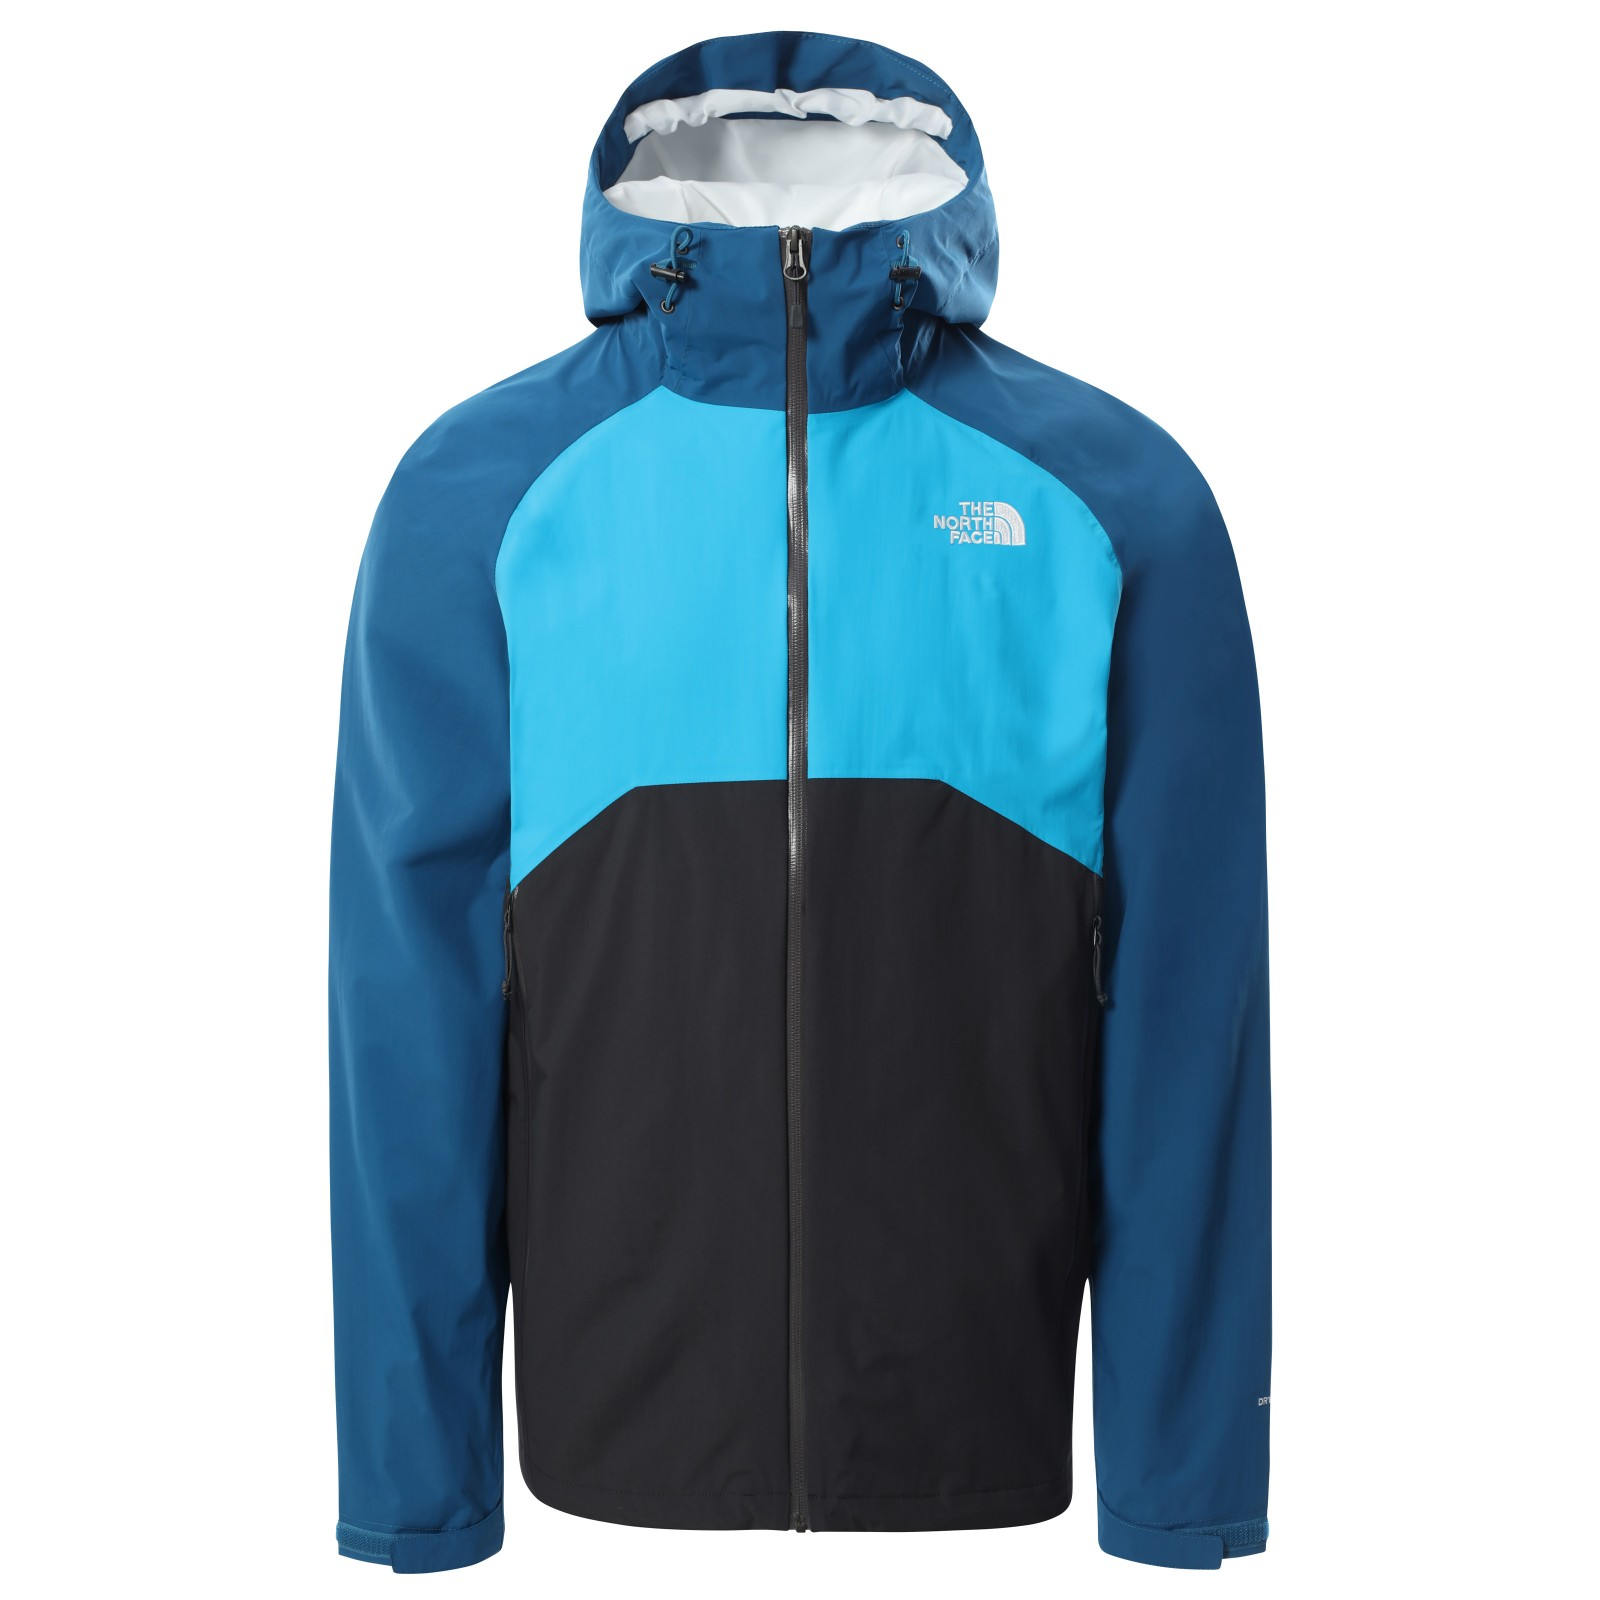 M STRATOS JACKET - EU